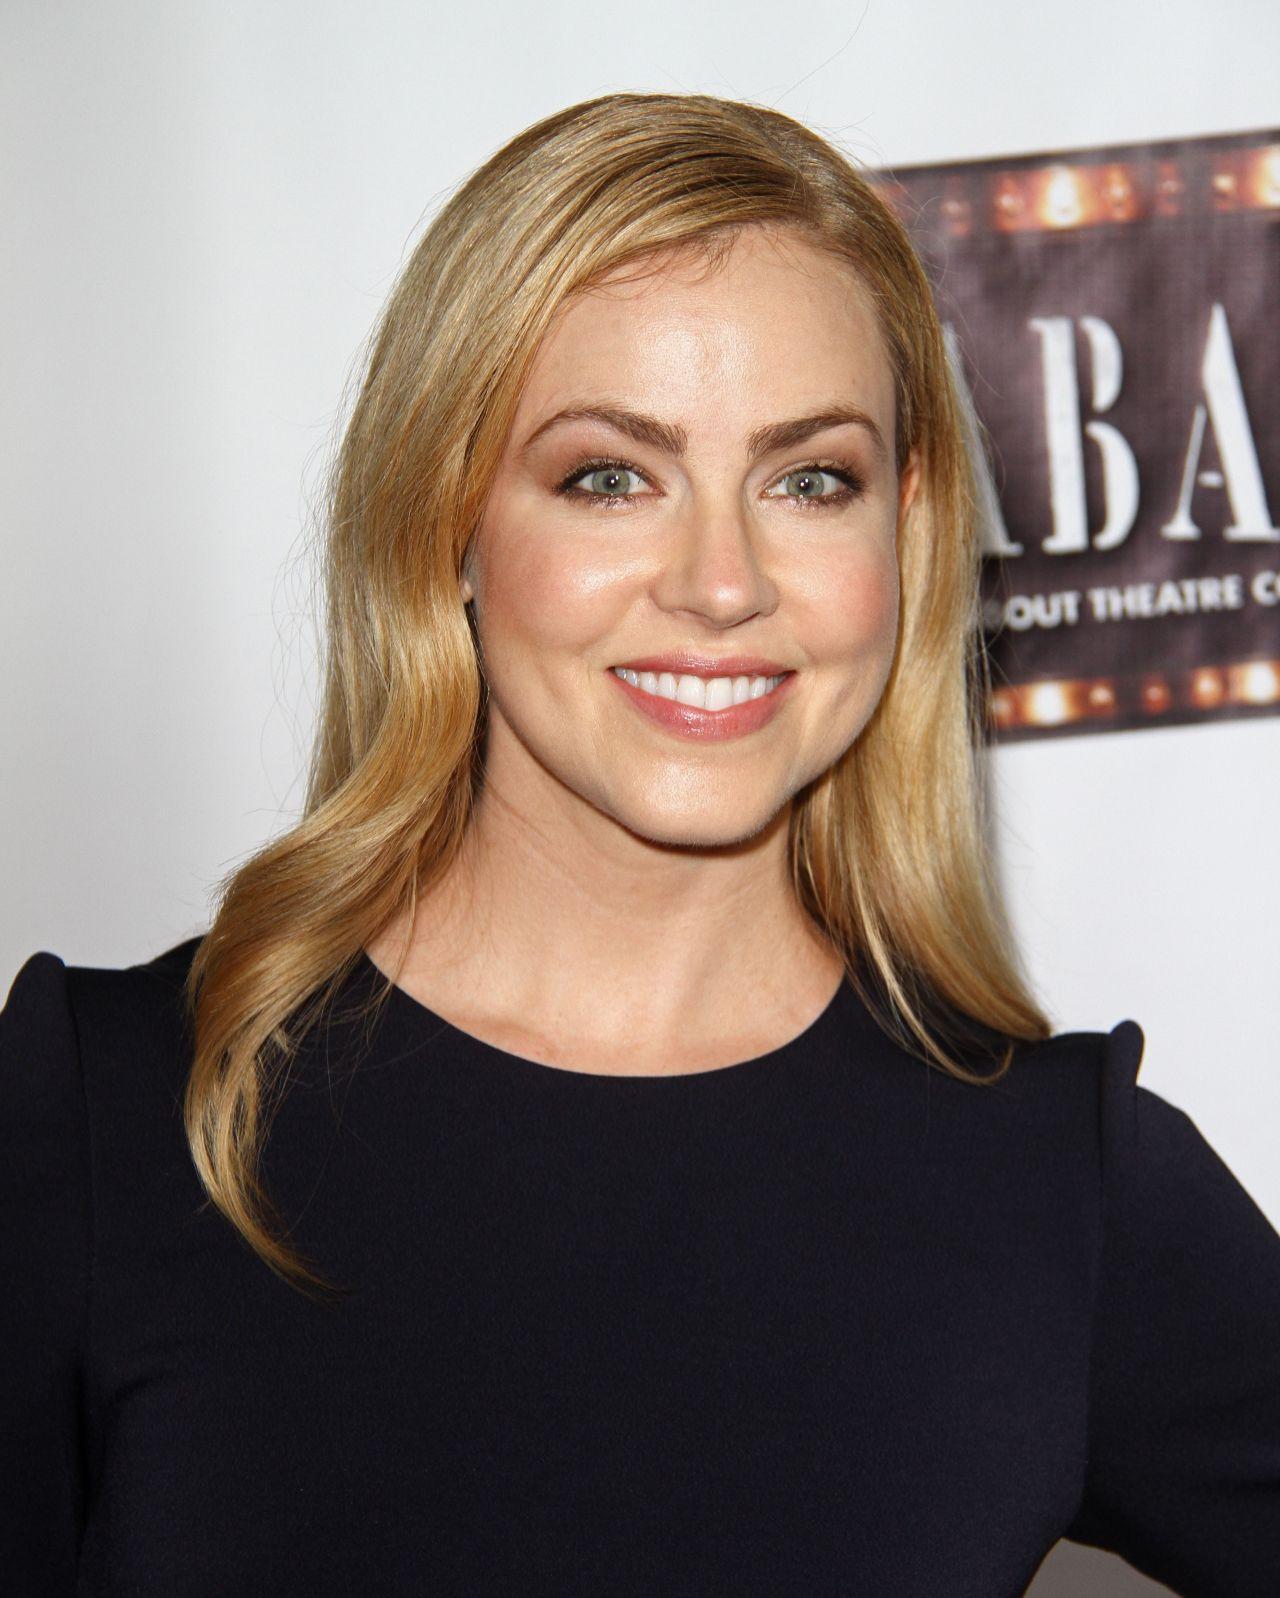 Amanda schull cabaret opening at the hollywood pantages theatre in